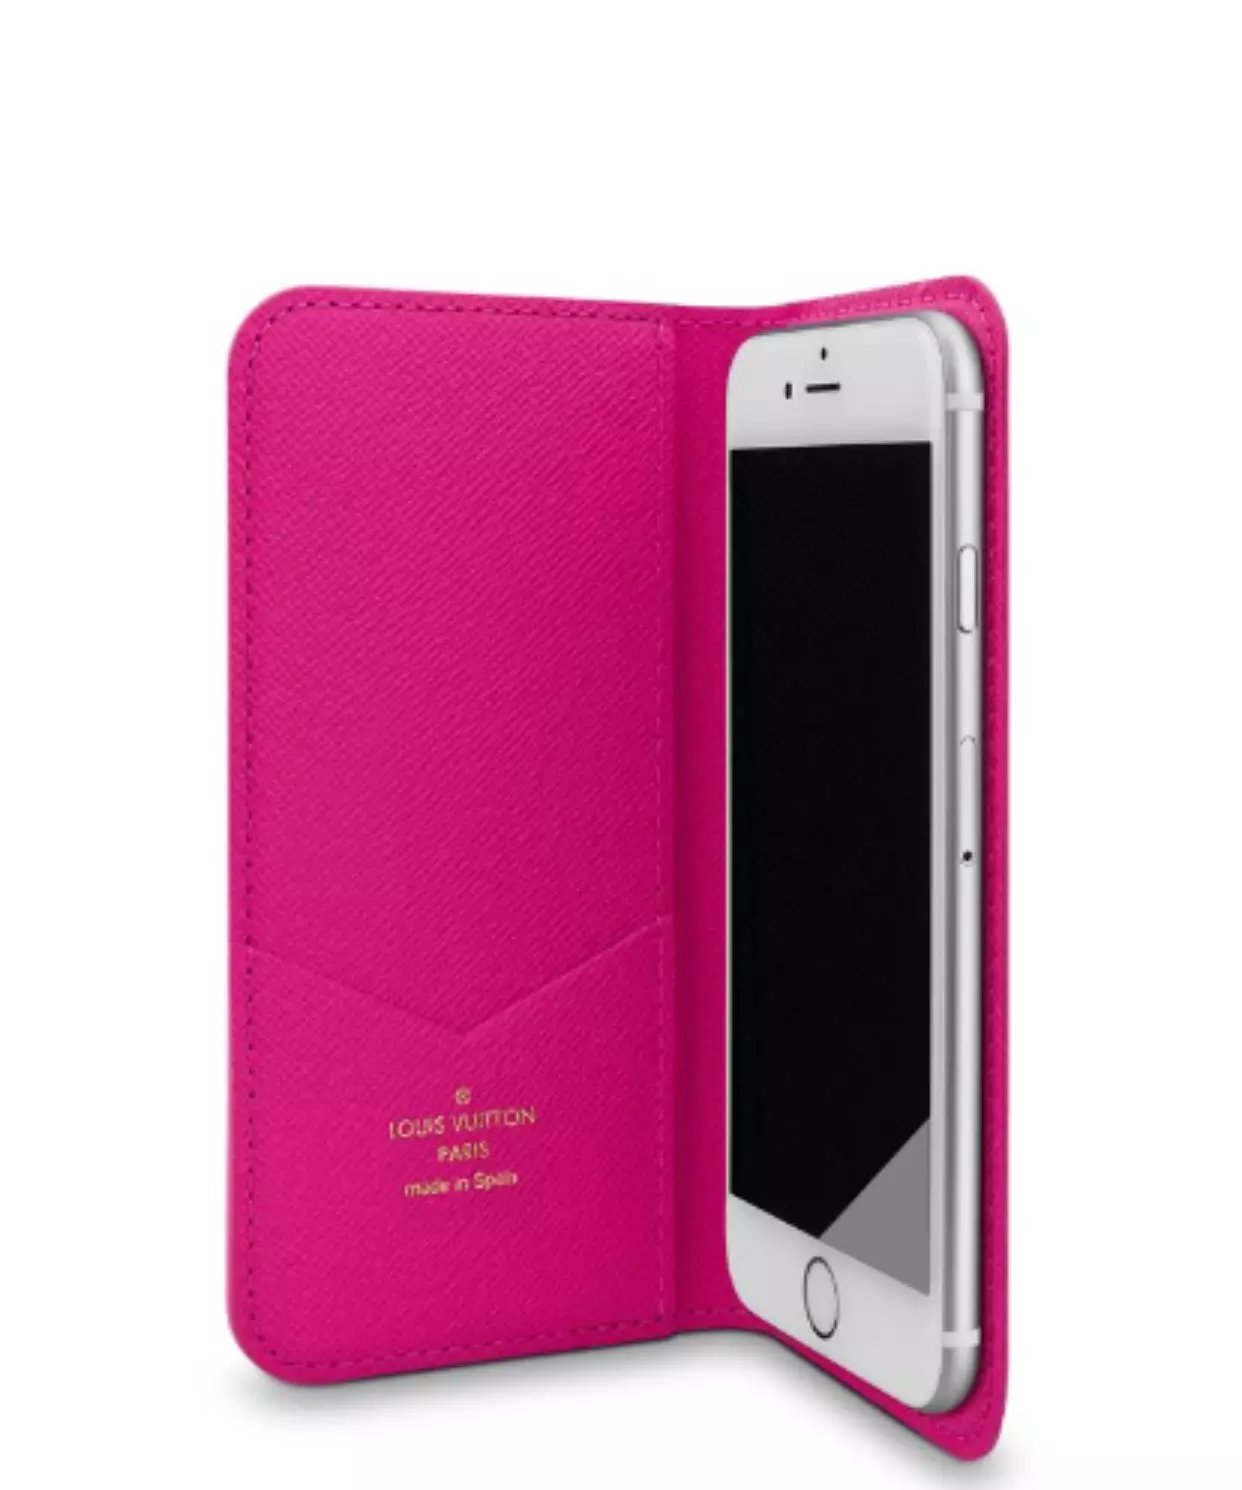 iphone hülle bedrucken lassen mini iphone hülle Louis Vuitton iphone 8 Plus hüllen handy ca8 Plus mit foto handytasche für iphone iphone 8 Plus technische daten flip ca8 Plus E schutzrahmen iphone 8 Plus original iphone 8 Plus hülle